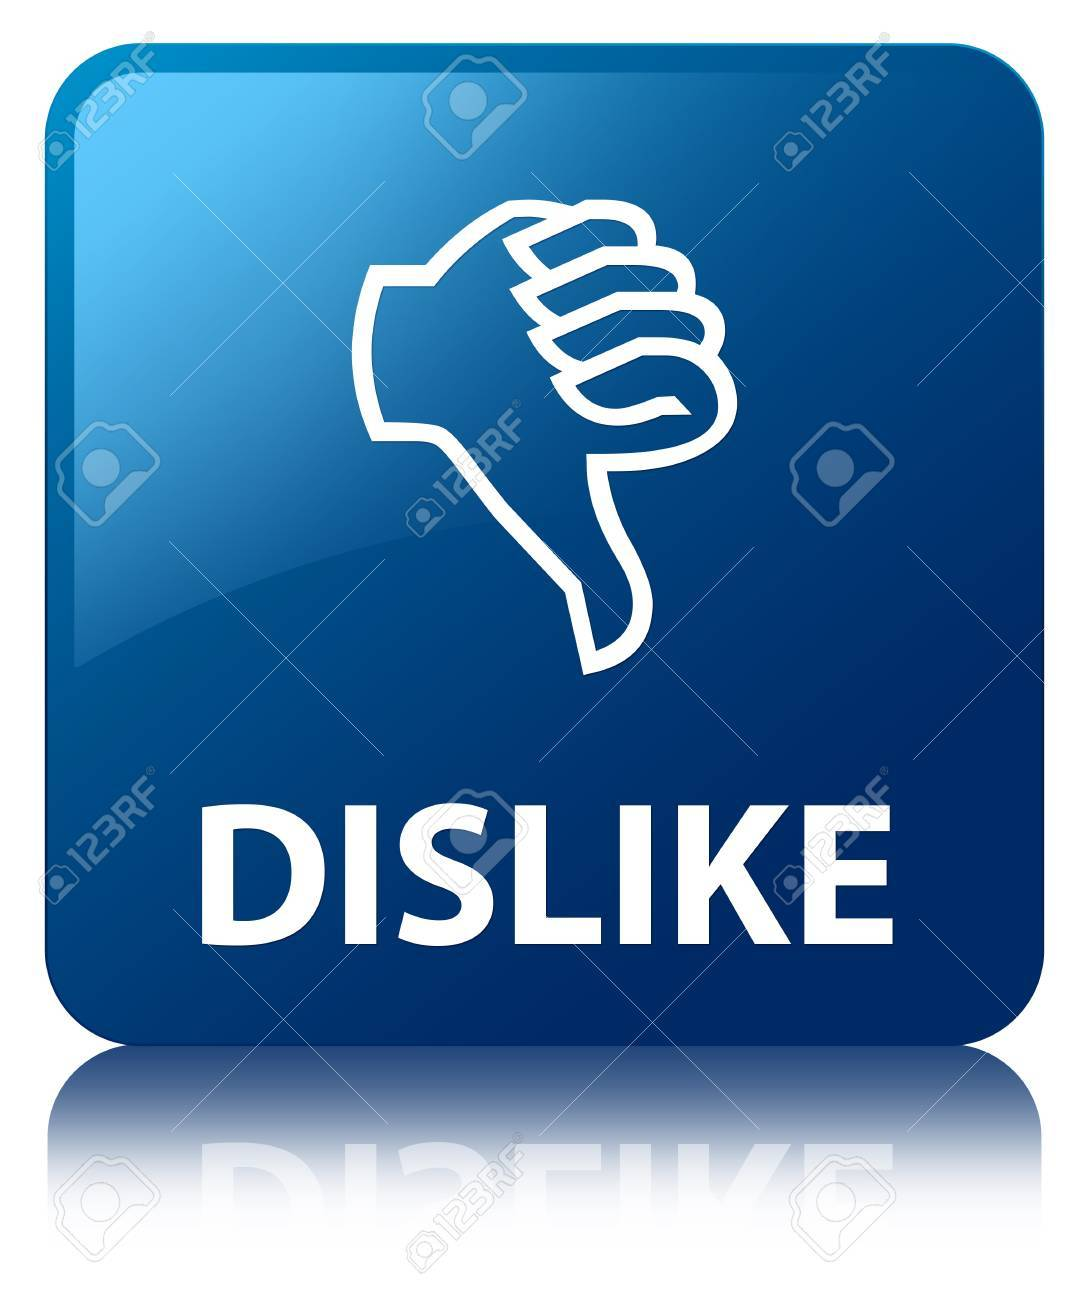 Dislike glossy blue reflected square button Stock Photo - 18763312